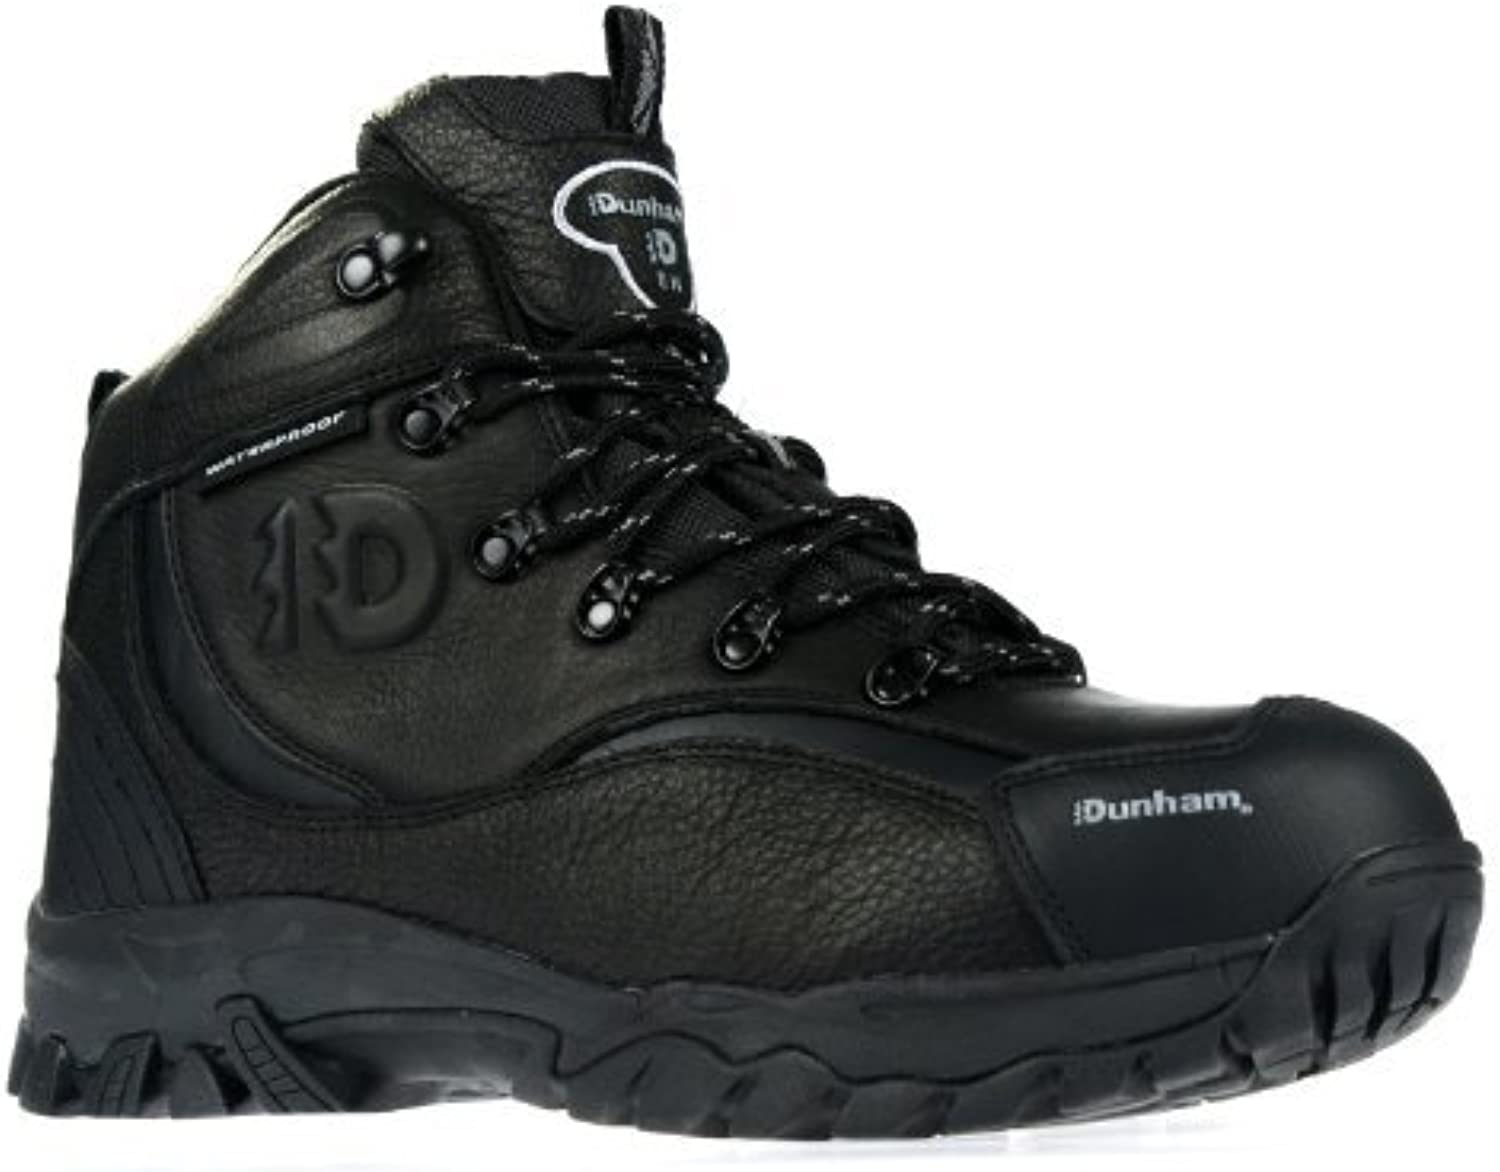 New Balance Dunham by Acadia 402 Steel Toe Mens Black Work Boot Hiker